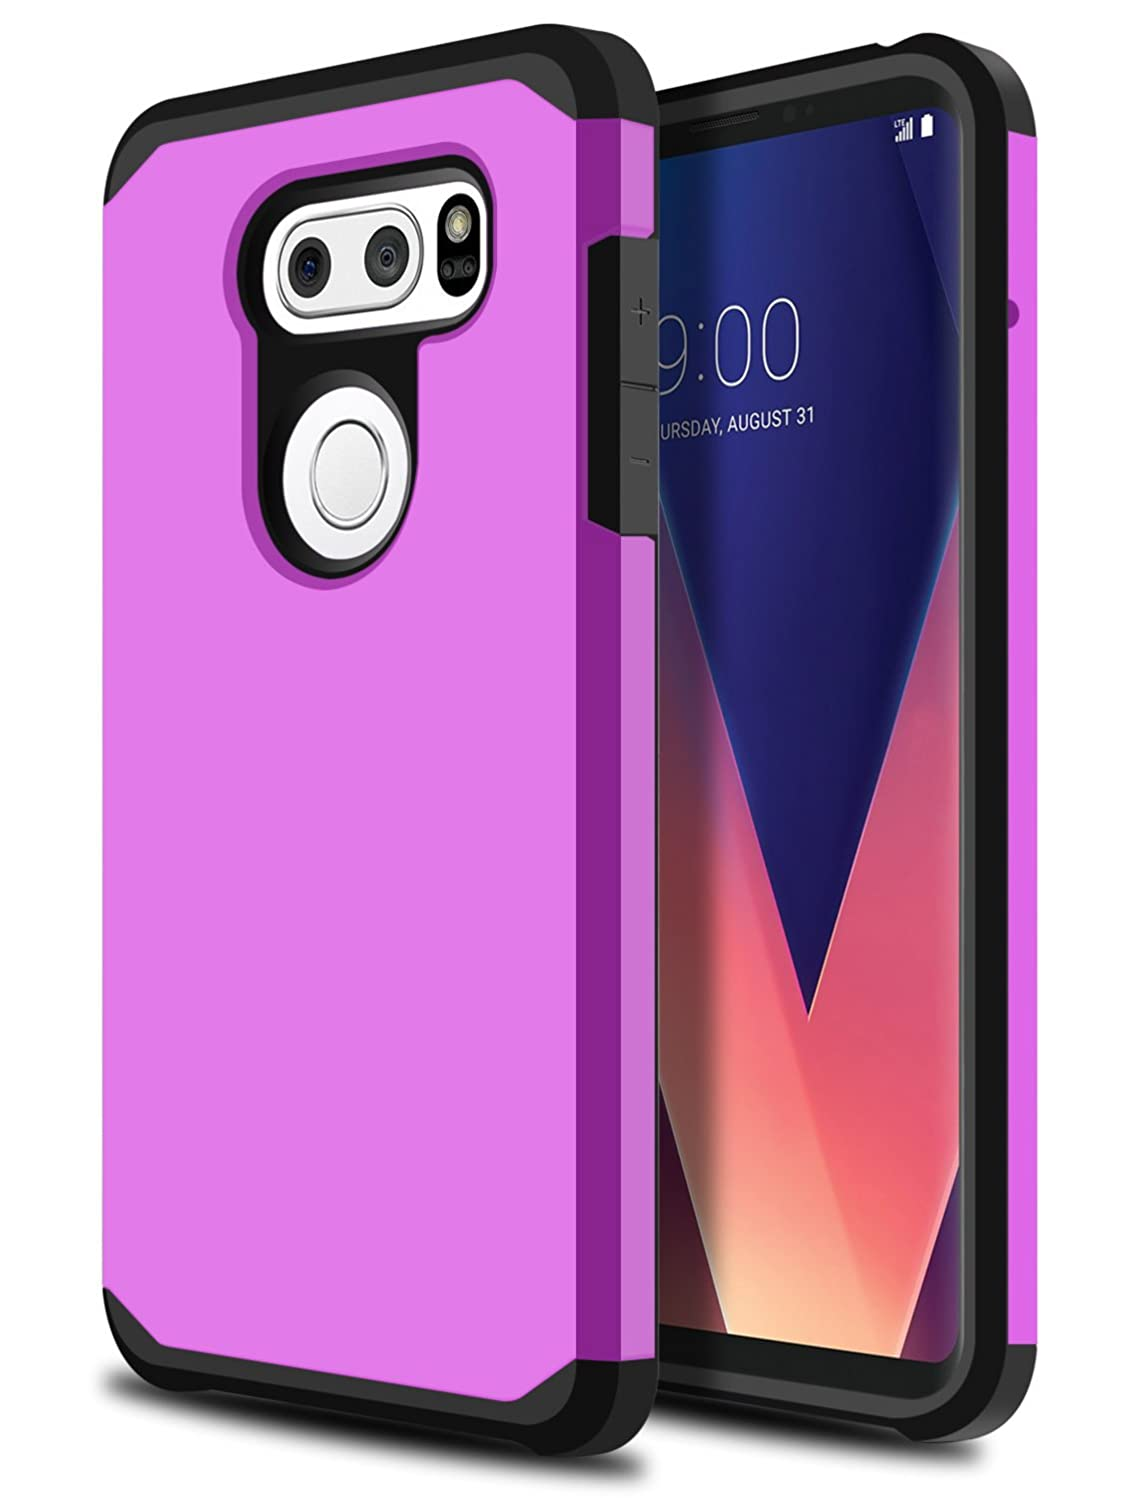 LG V30 Case, LG V30 Plus Case, OTOONE [Slim Fit] Dual Layer Heavy Duty Protection Rubber Silicone Matte Cover for LG V30+ 2017 Without Built IN Screen Protector (Purple)